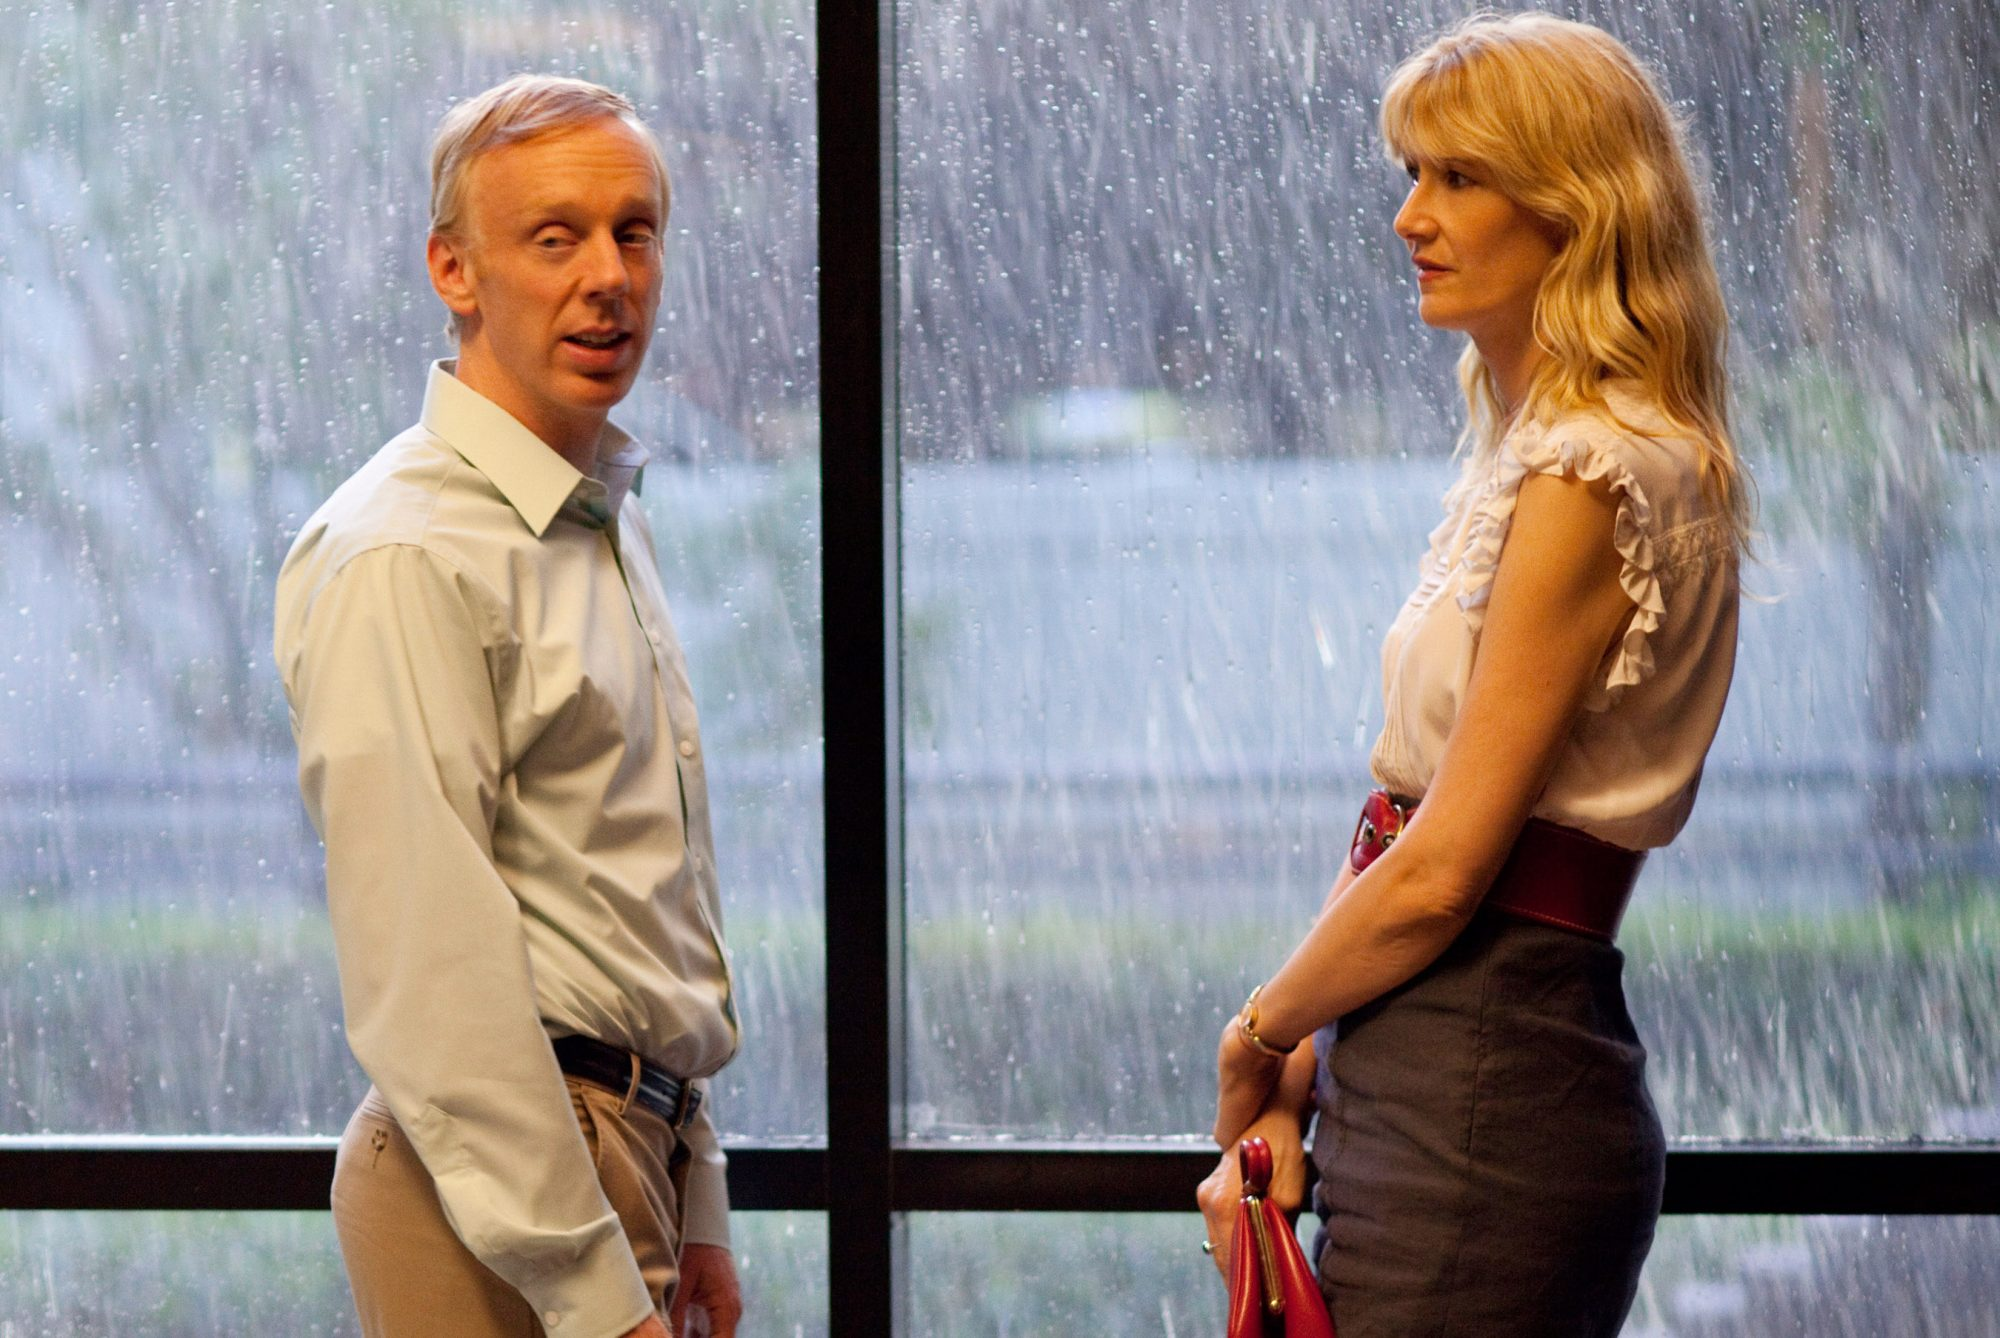 ENLIGHTENED, l-r: Mike White, Laura Dern (Season 1), 2011-13. ph: Nicola Goode/©HBO/courtesy Everett